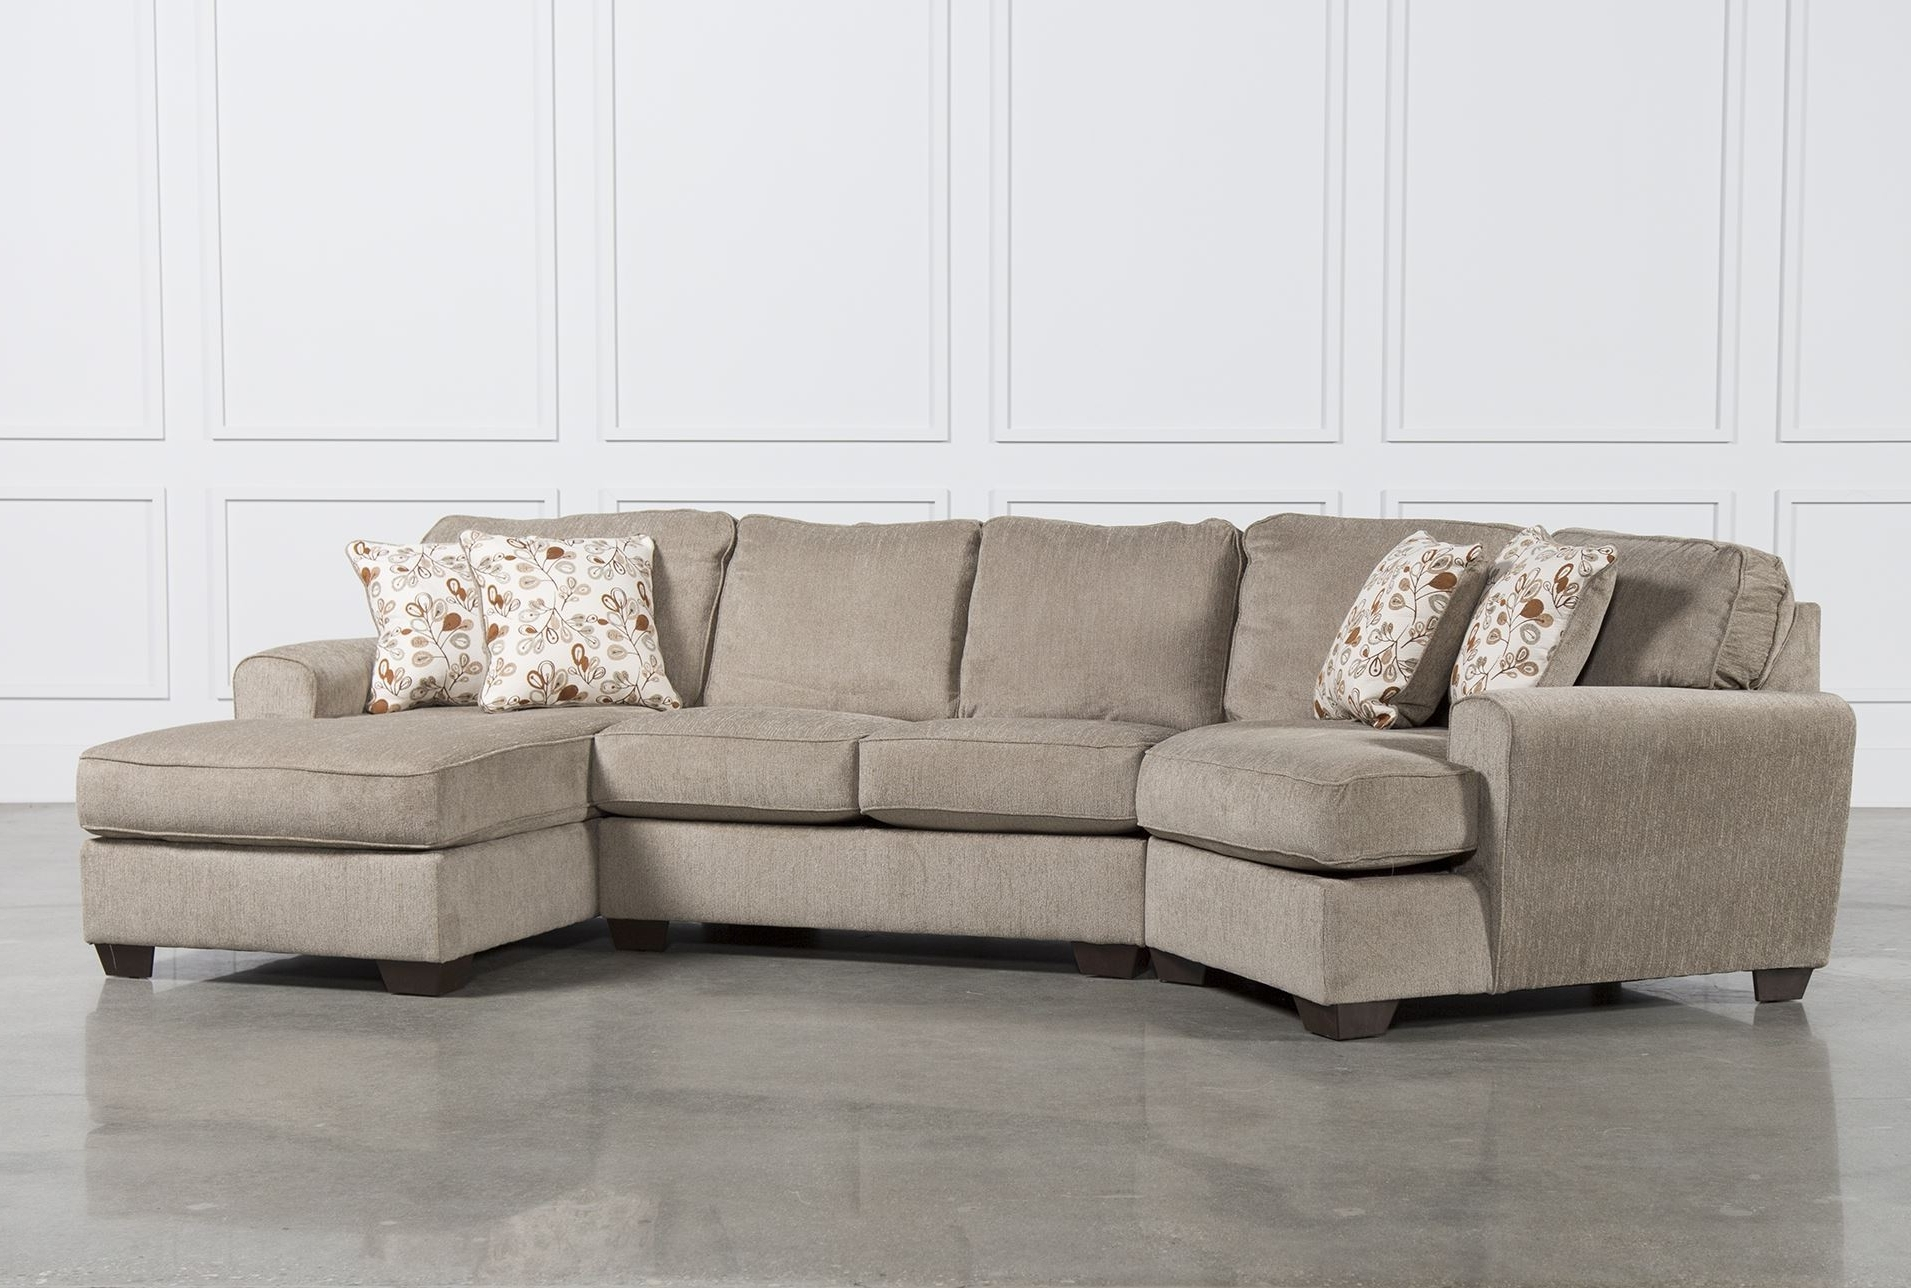 2018 Sectional Sofa With Cuddler Chaise (View 2 of 15)